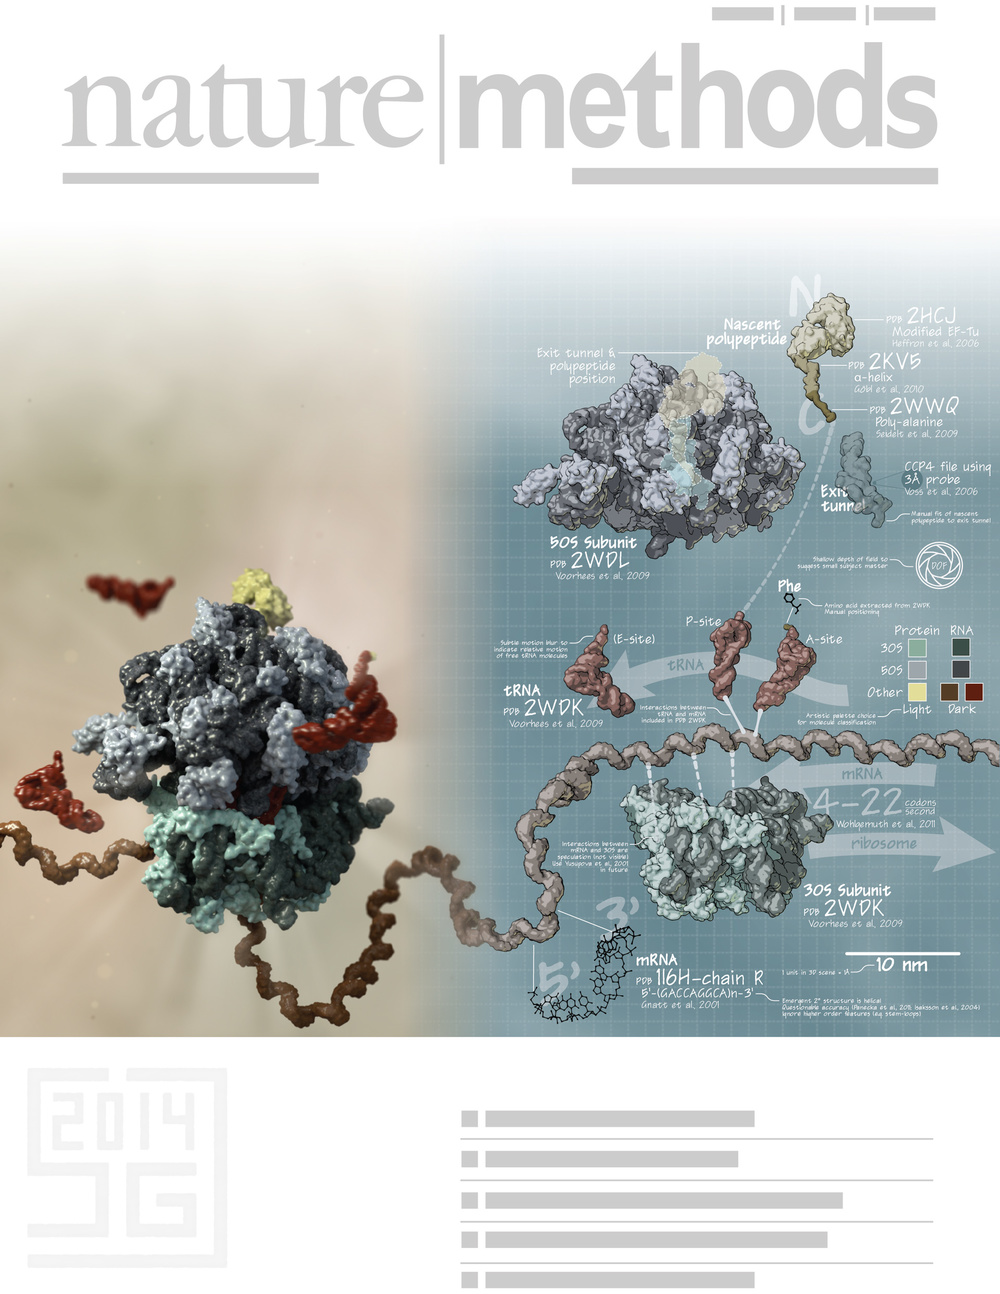 70S Ribosome: Data and Design